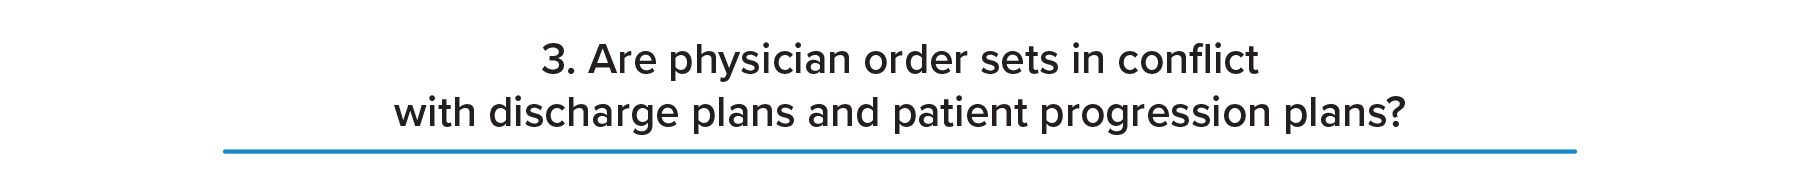 Synching physician order sets in mind with patient progression goals is important to keeping physicians aligned